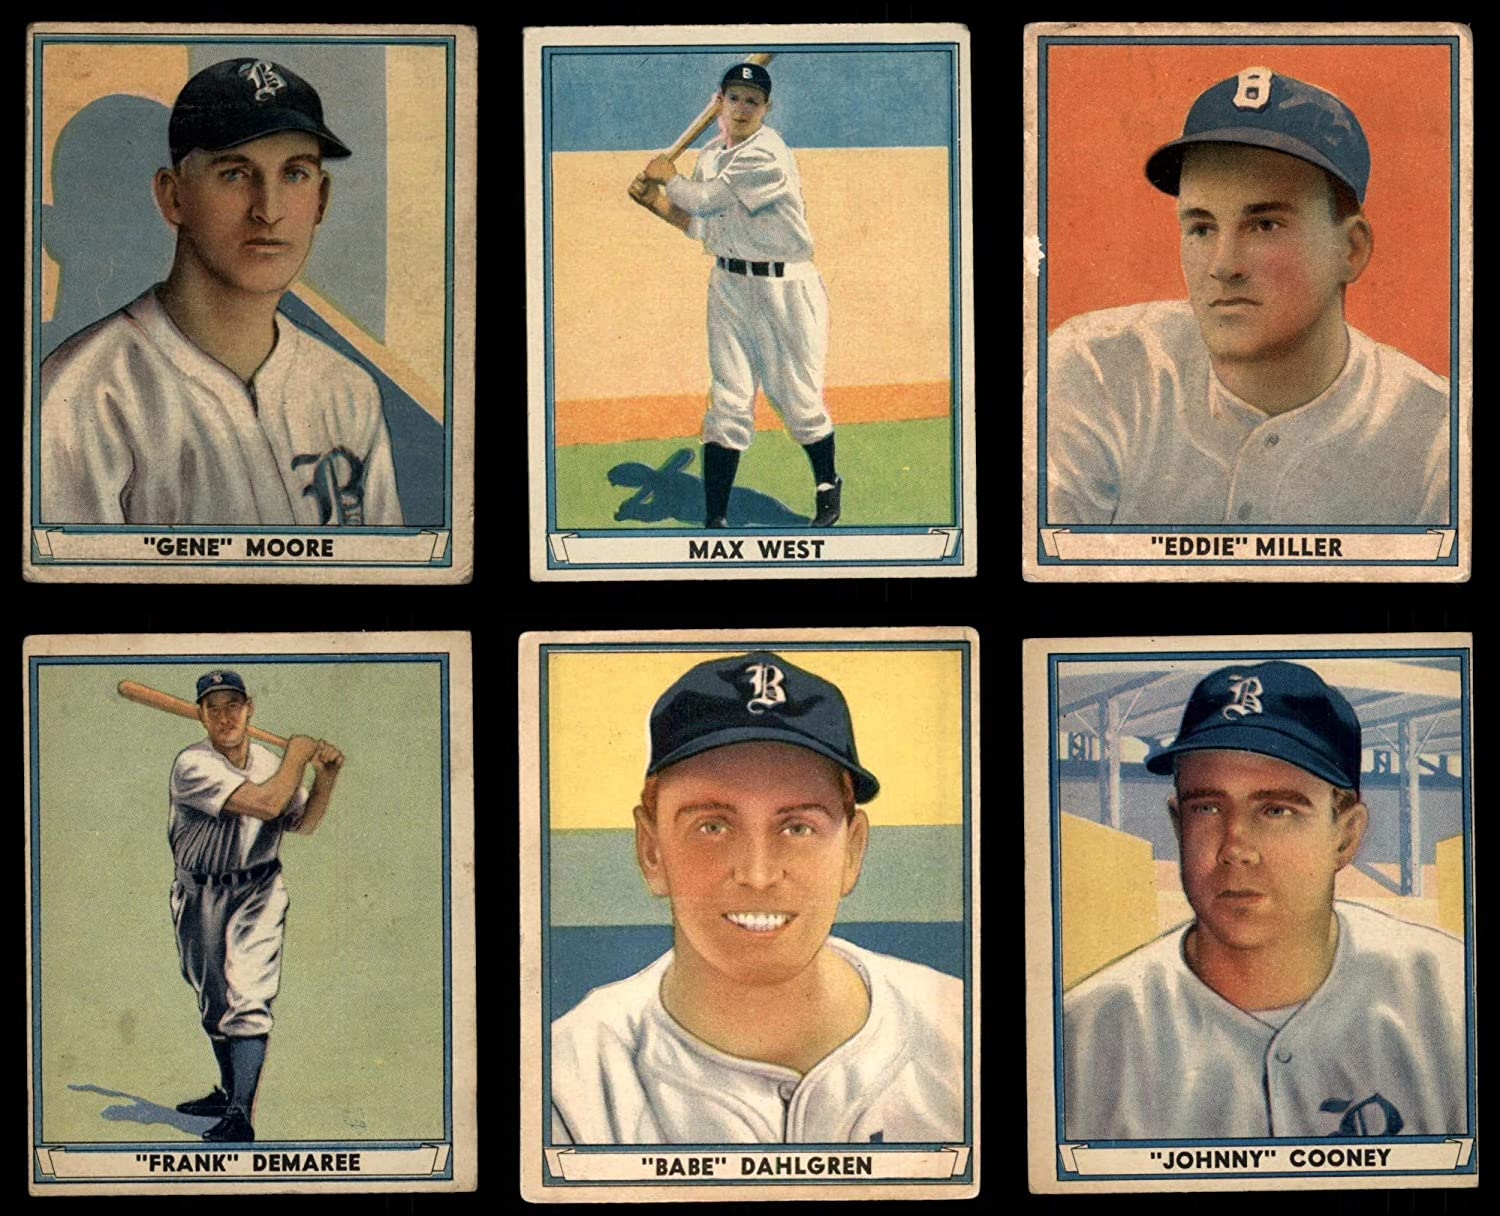 1941 spielen Ball Boston Braves in der Nähe von Team Satz Boston Braves (Baseball Set) Dean'S Cards 3 - Vg Braves